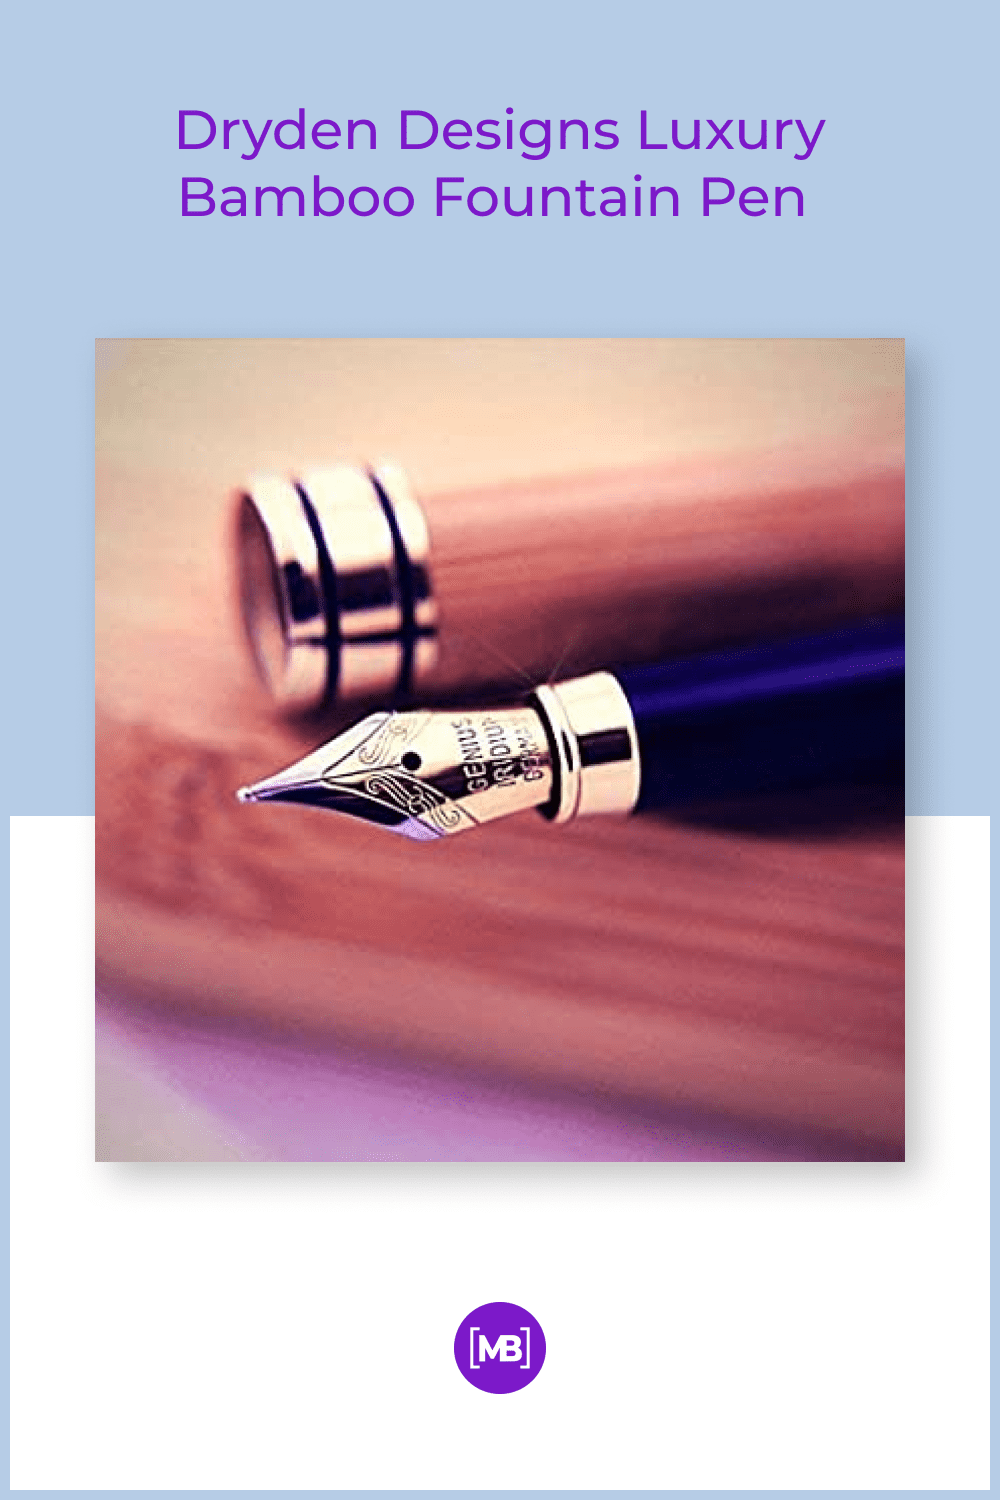 No blotching, skipping or bleeding ensures quality writing every time you pick up this Dryden Bamboo fountain pen.